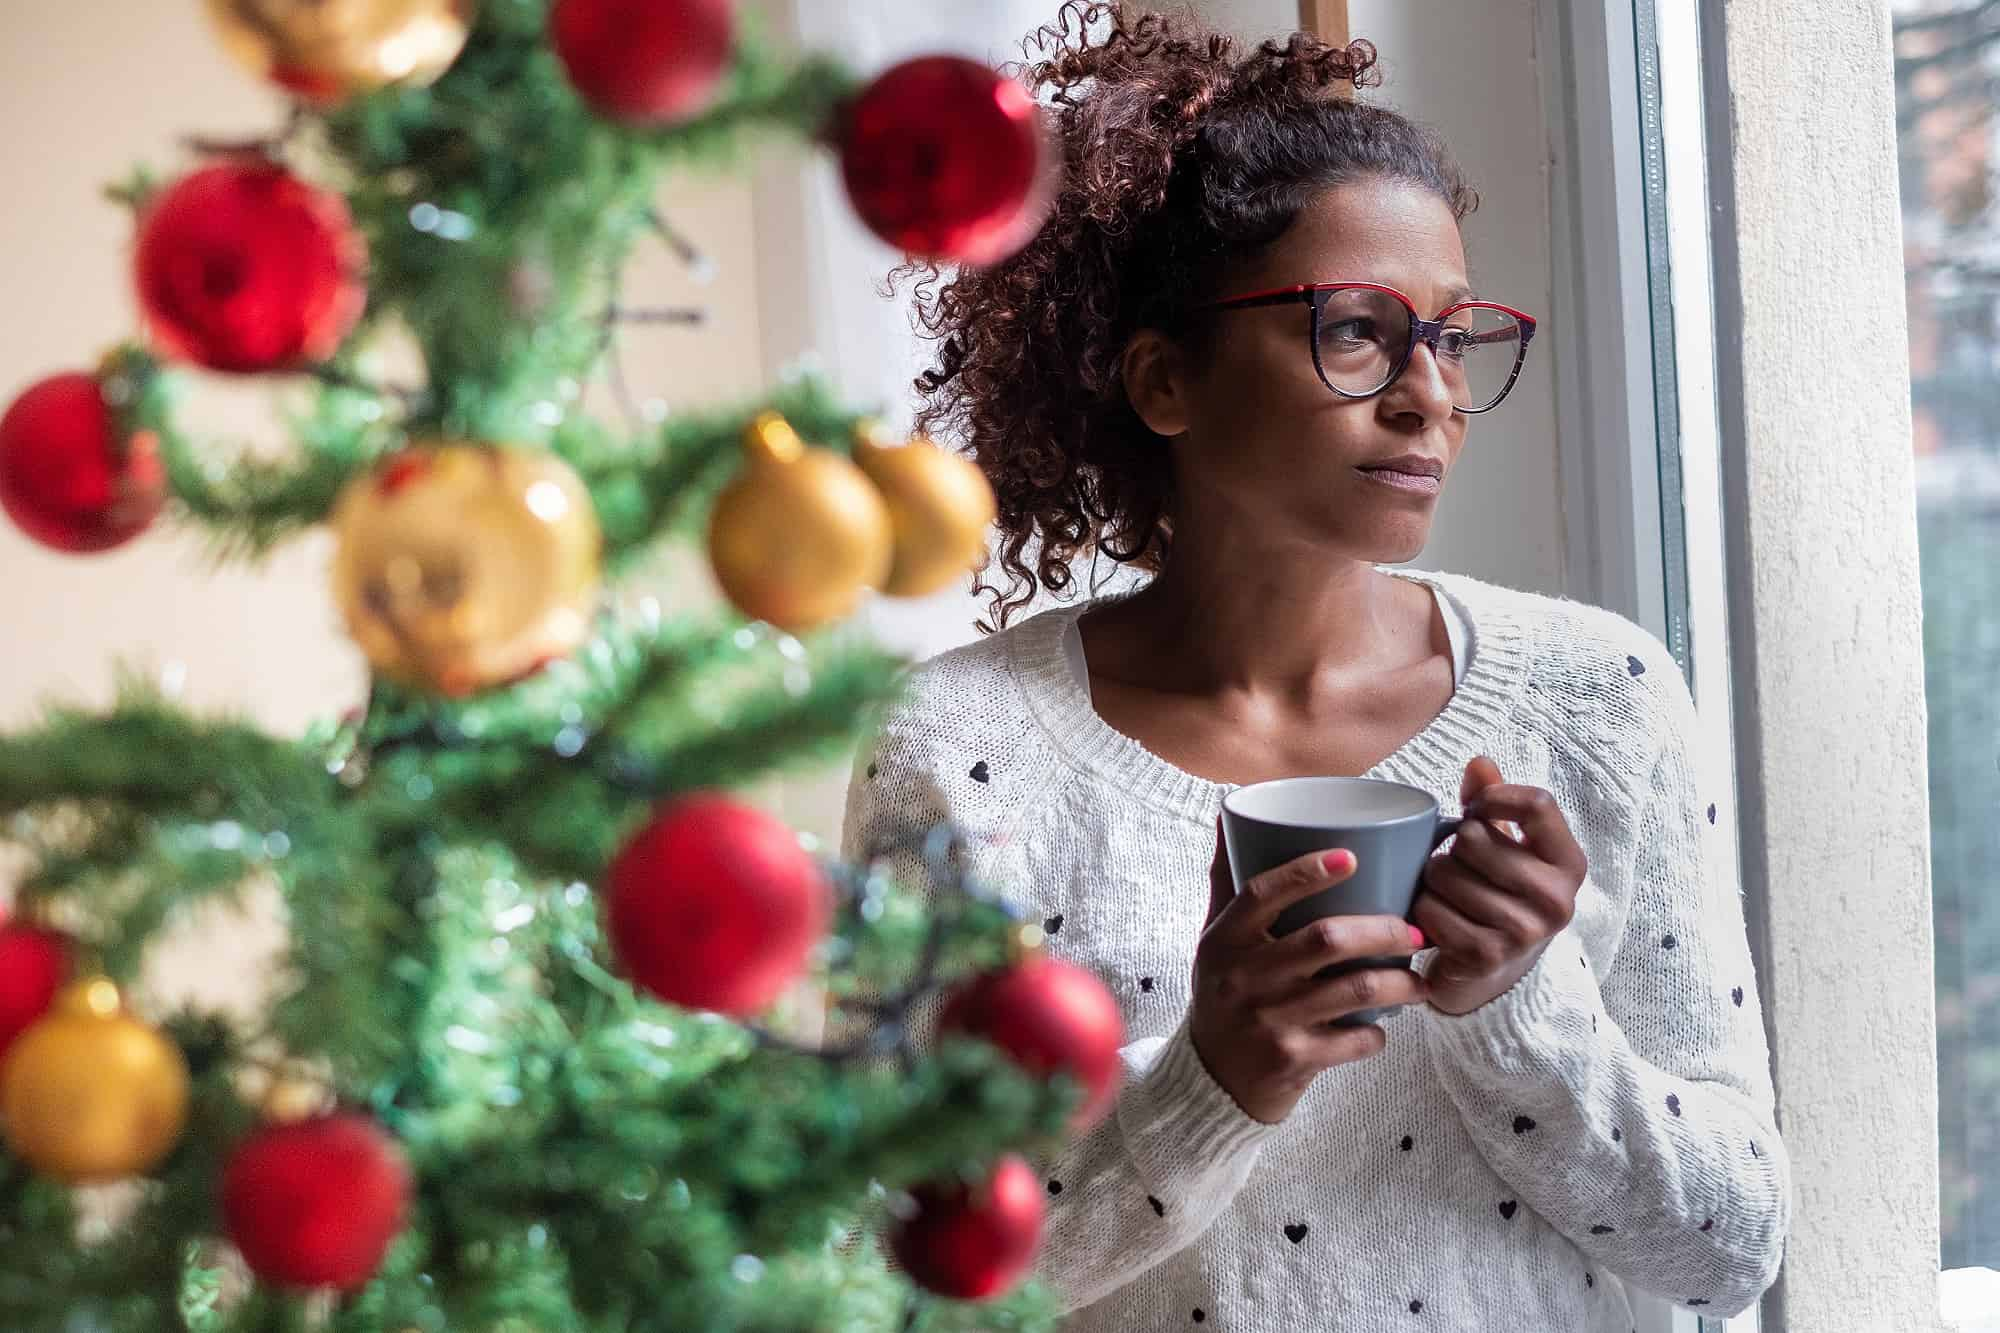 Got a case of the Holiday Blues ? Here's how to chase 'em away